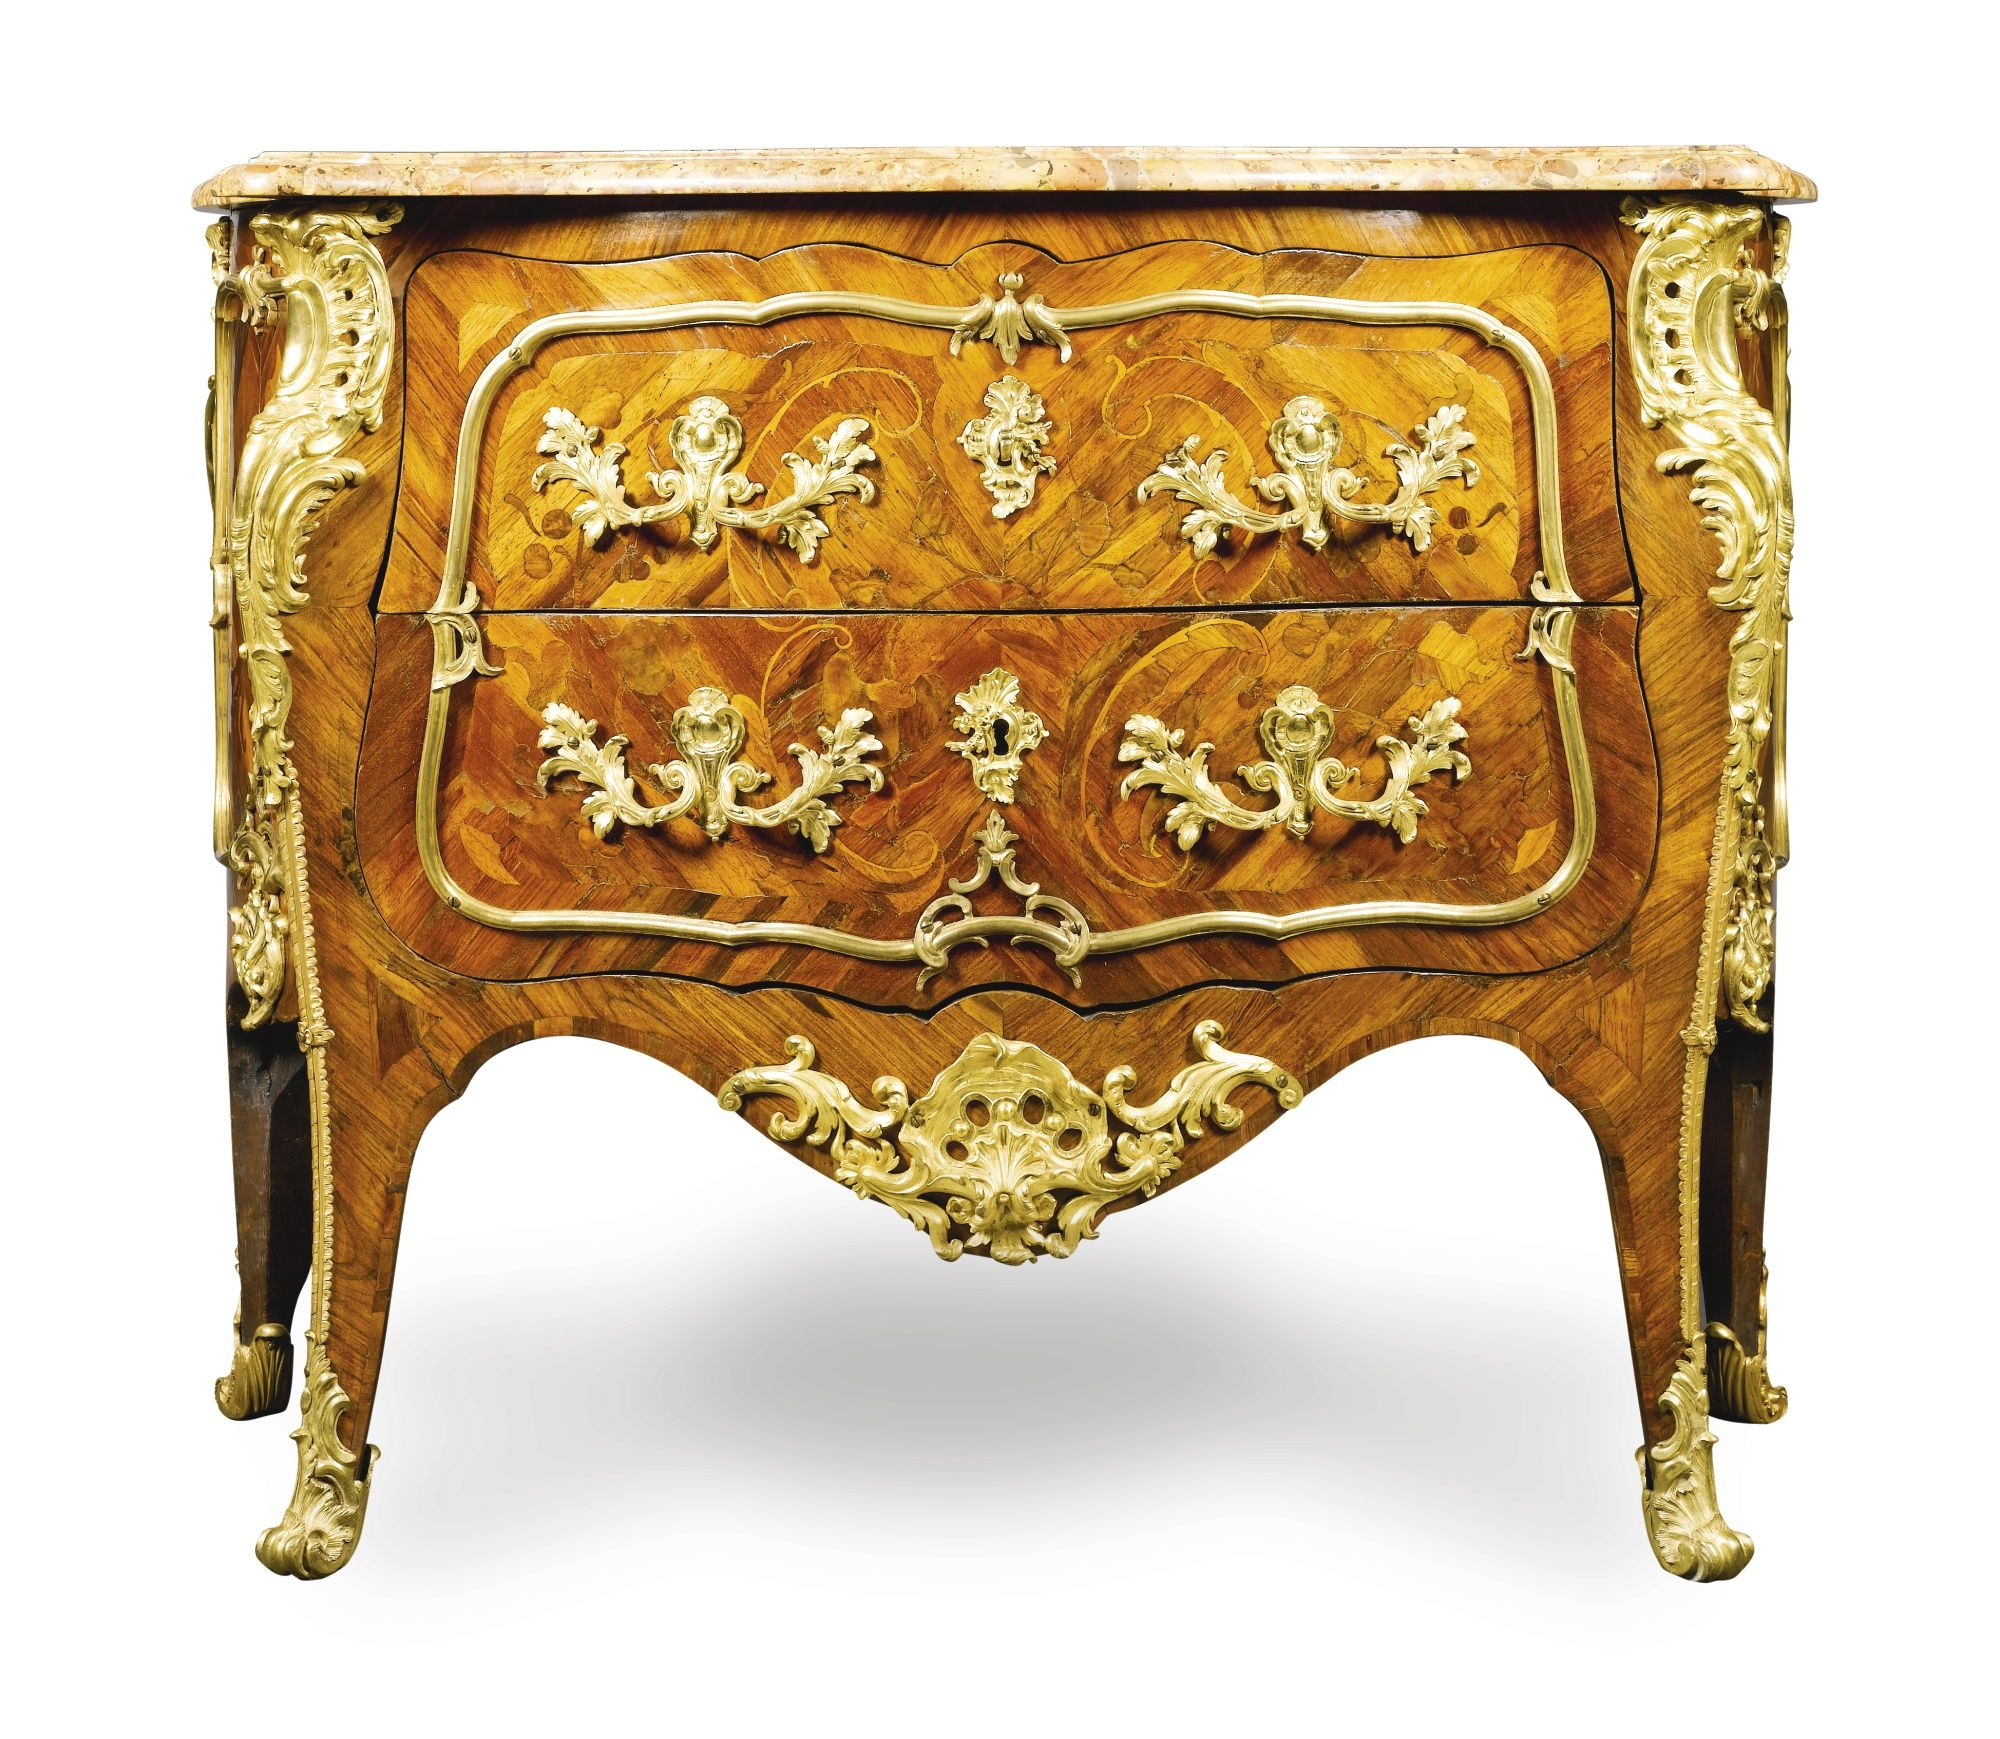 Meubles Anciennes En France Kingwood And Marquetry Commode Louis Xv Circa 1740 Meubles